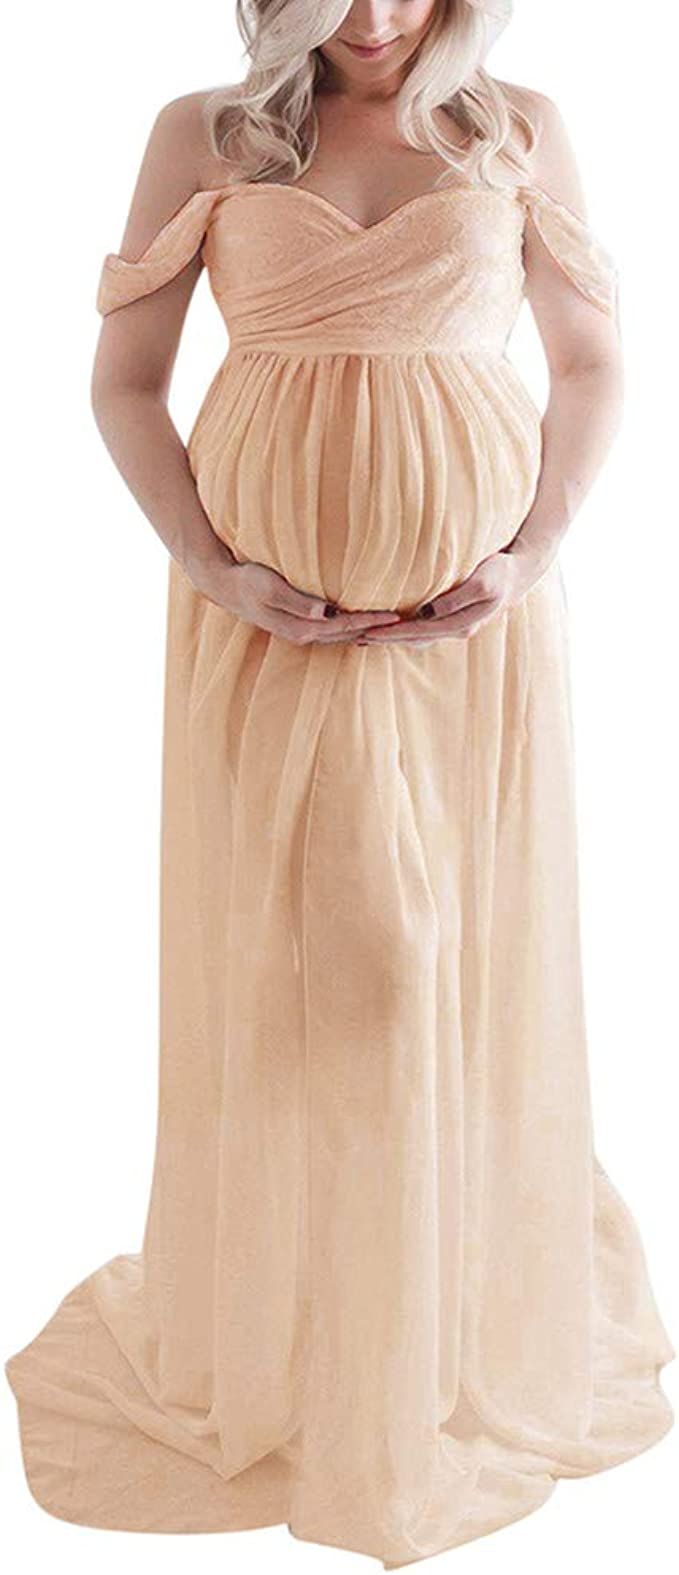 Amazon Com Meoilce Womens Off Shoulder Pregnant Dresses Maternity Long Maxi Dress Photography Wedding Gown For Baby Shower Clothing,Discount Wedding Dress Shops Uk